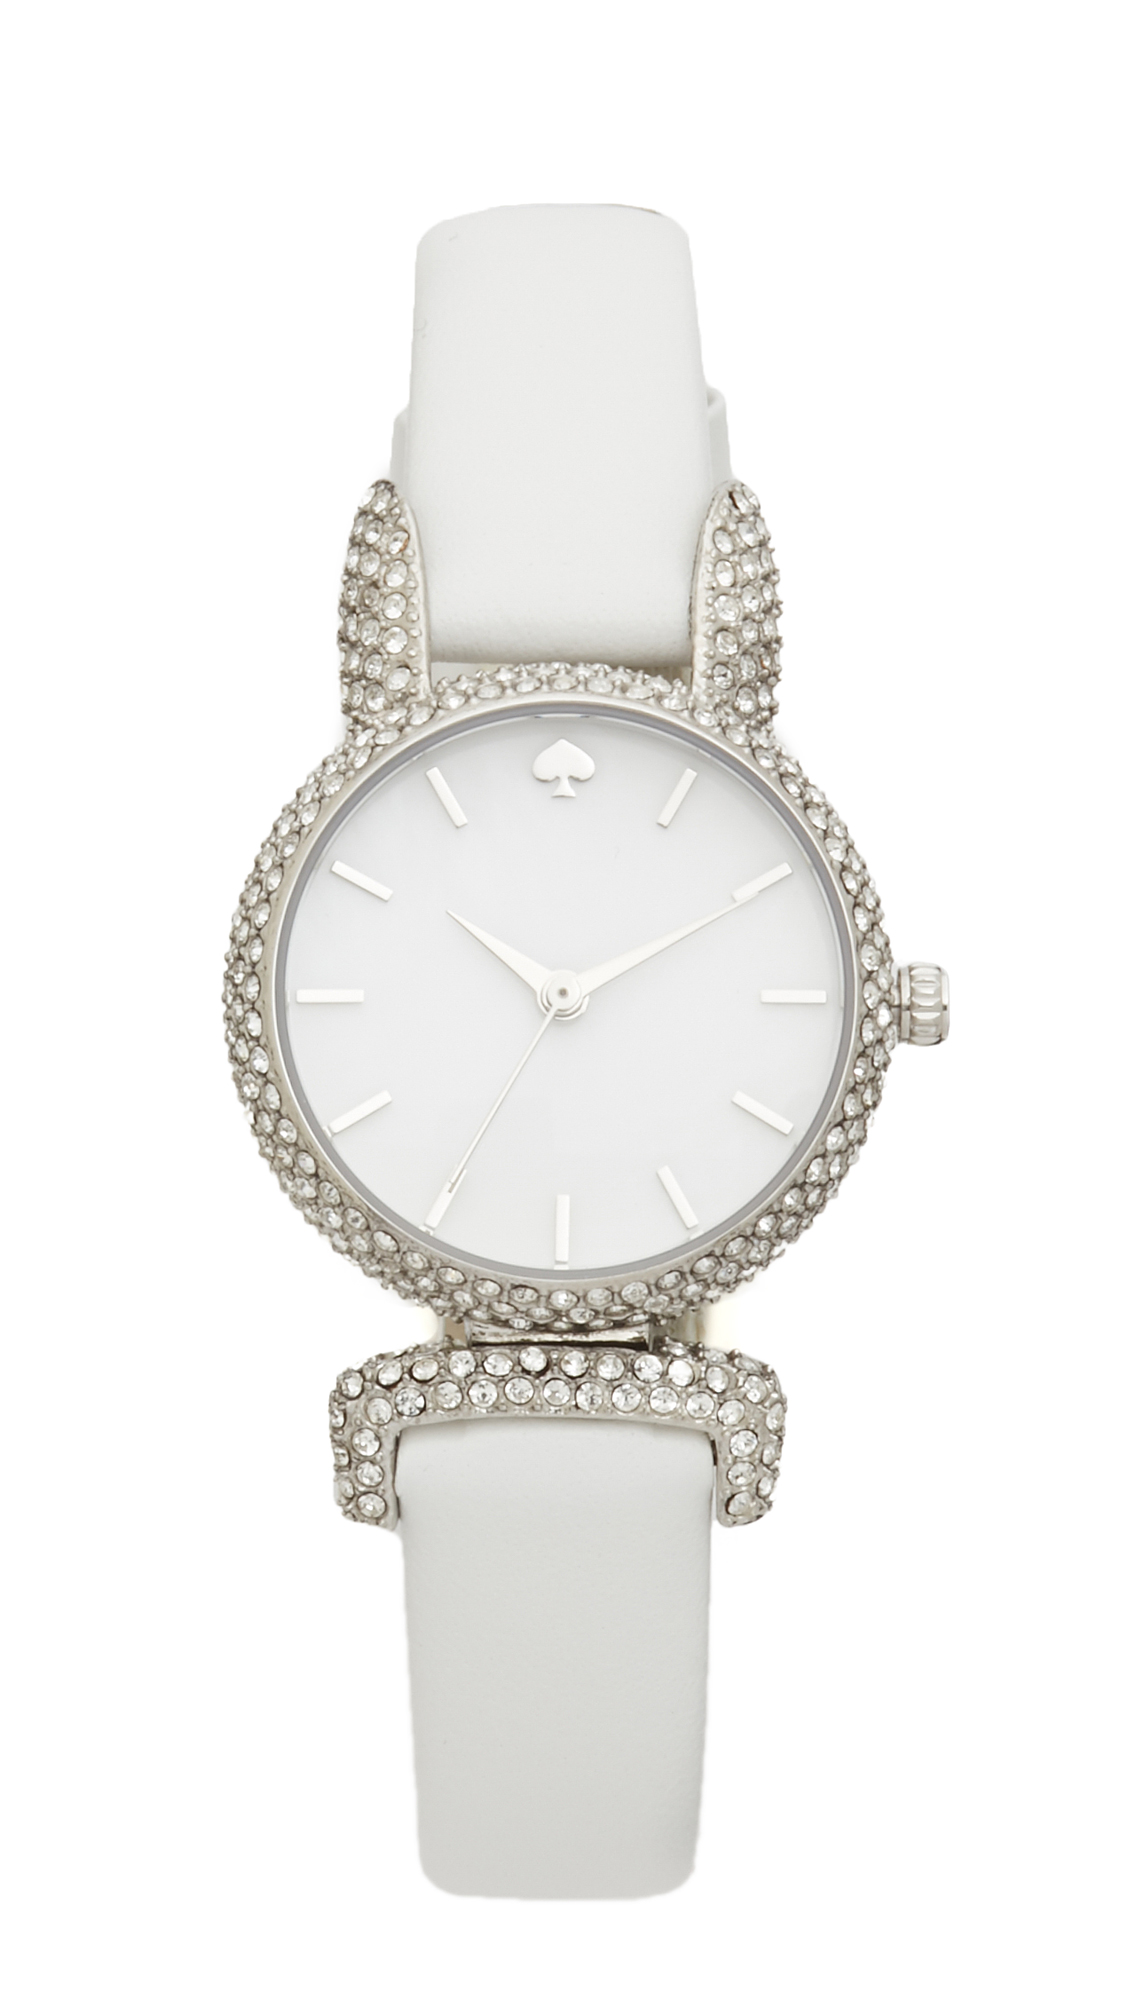 Kate Spade New York Novelty Watch - White/Stainless at Shopbop